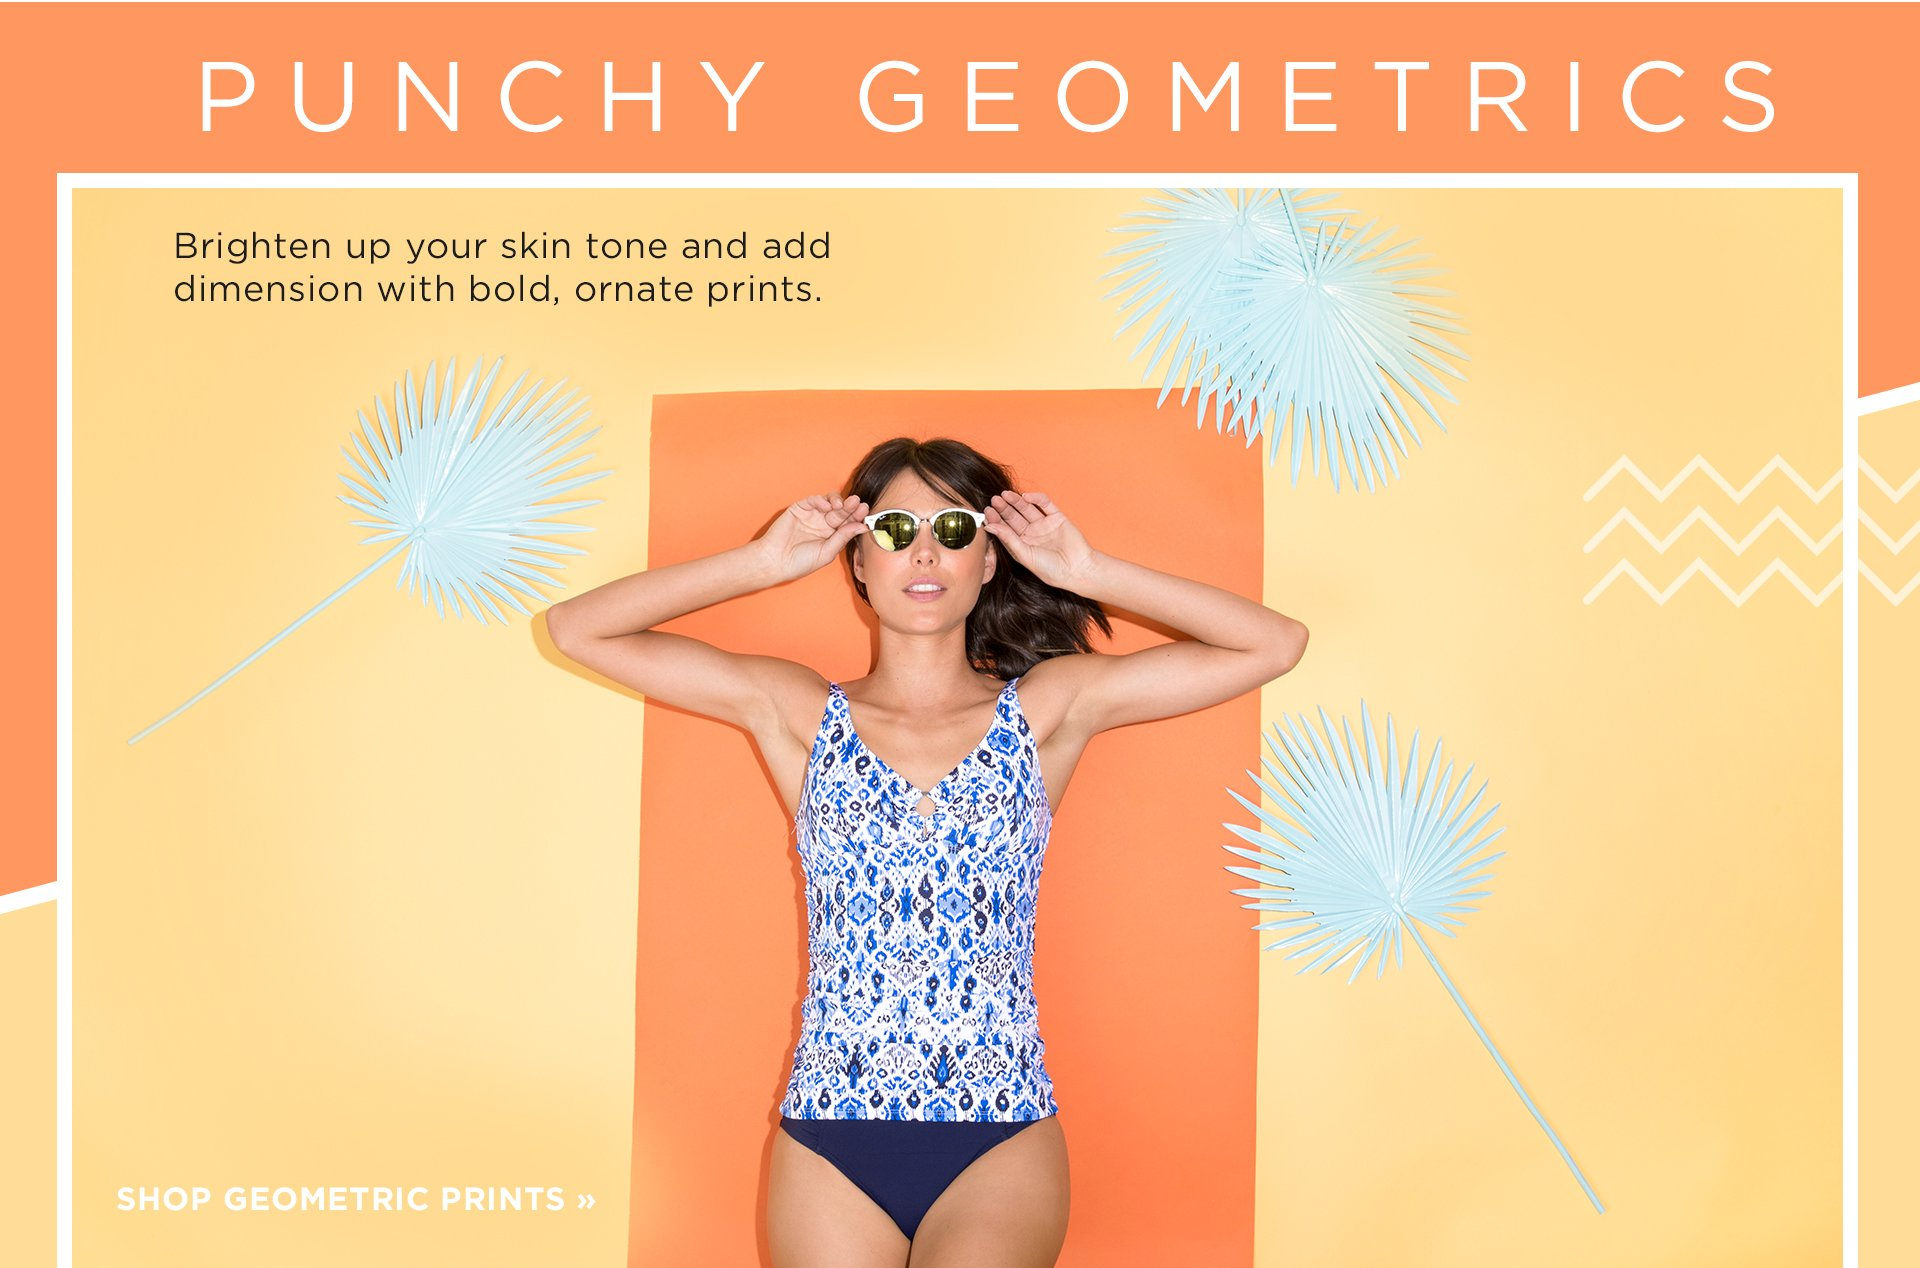 Shop Geometric Prints